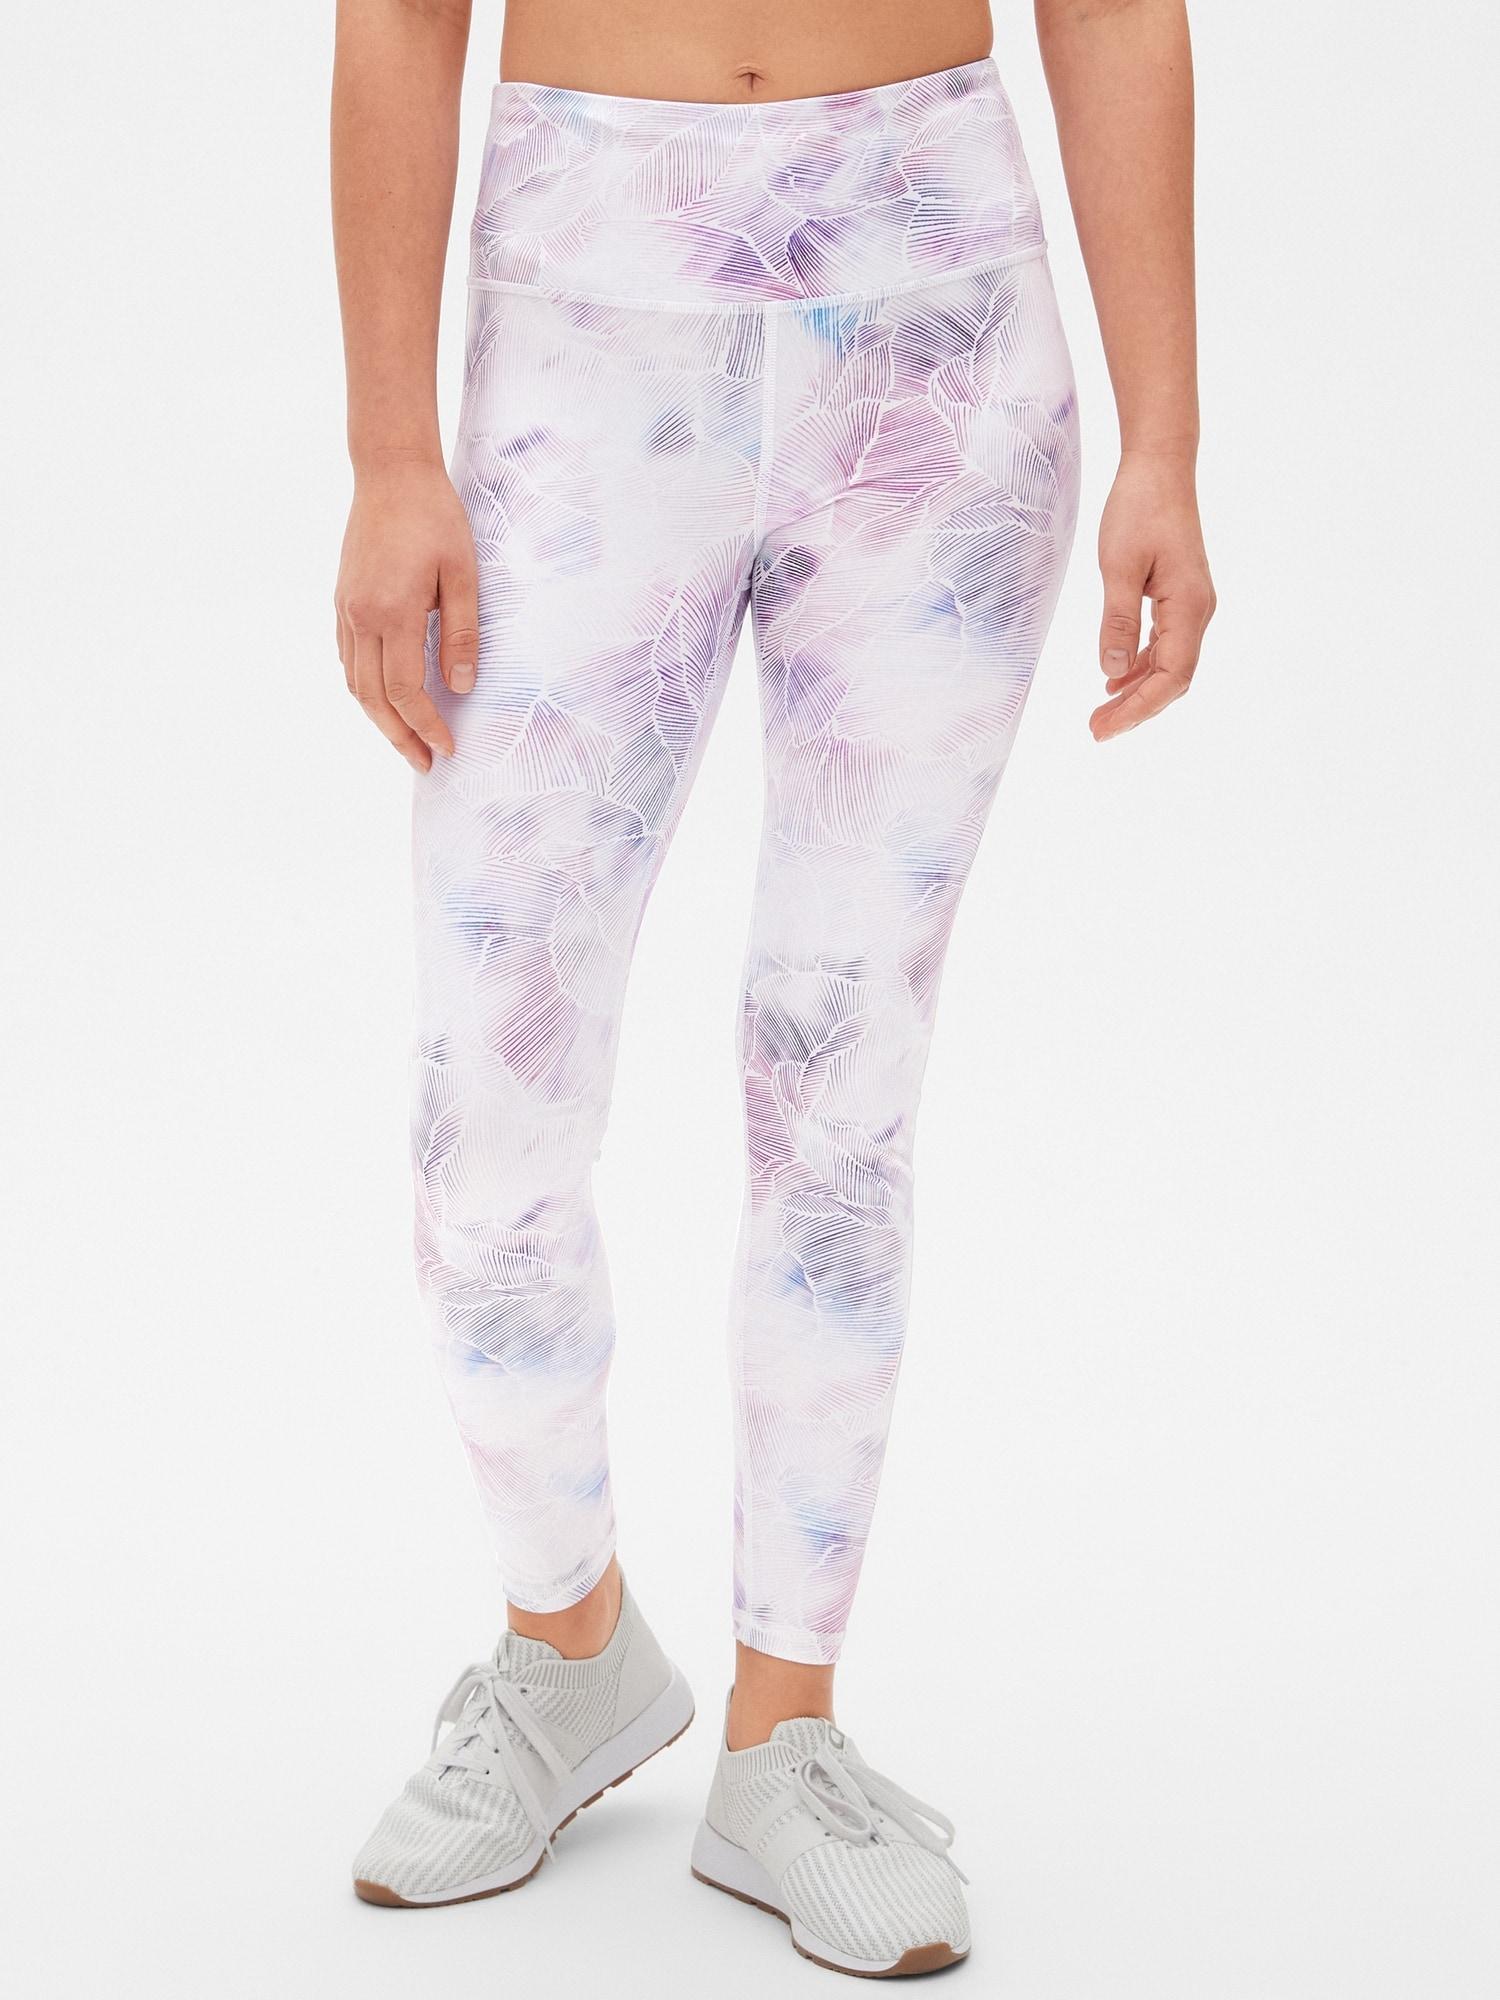 5b4d2425c741a Gap. Women's Fit High Rise Blackout Print Full Length Leggings